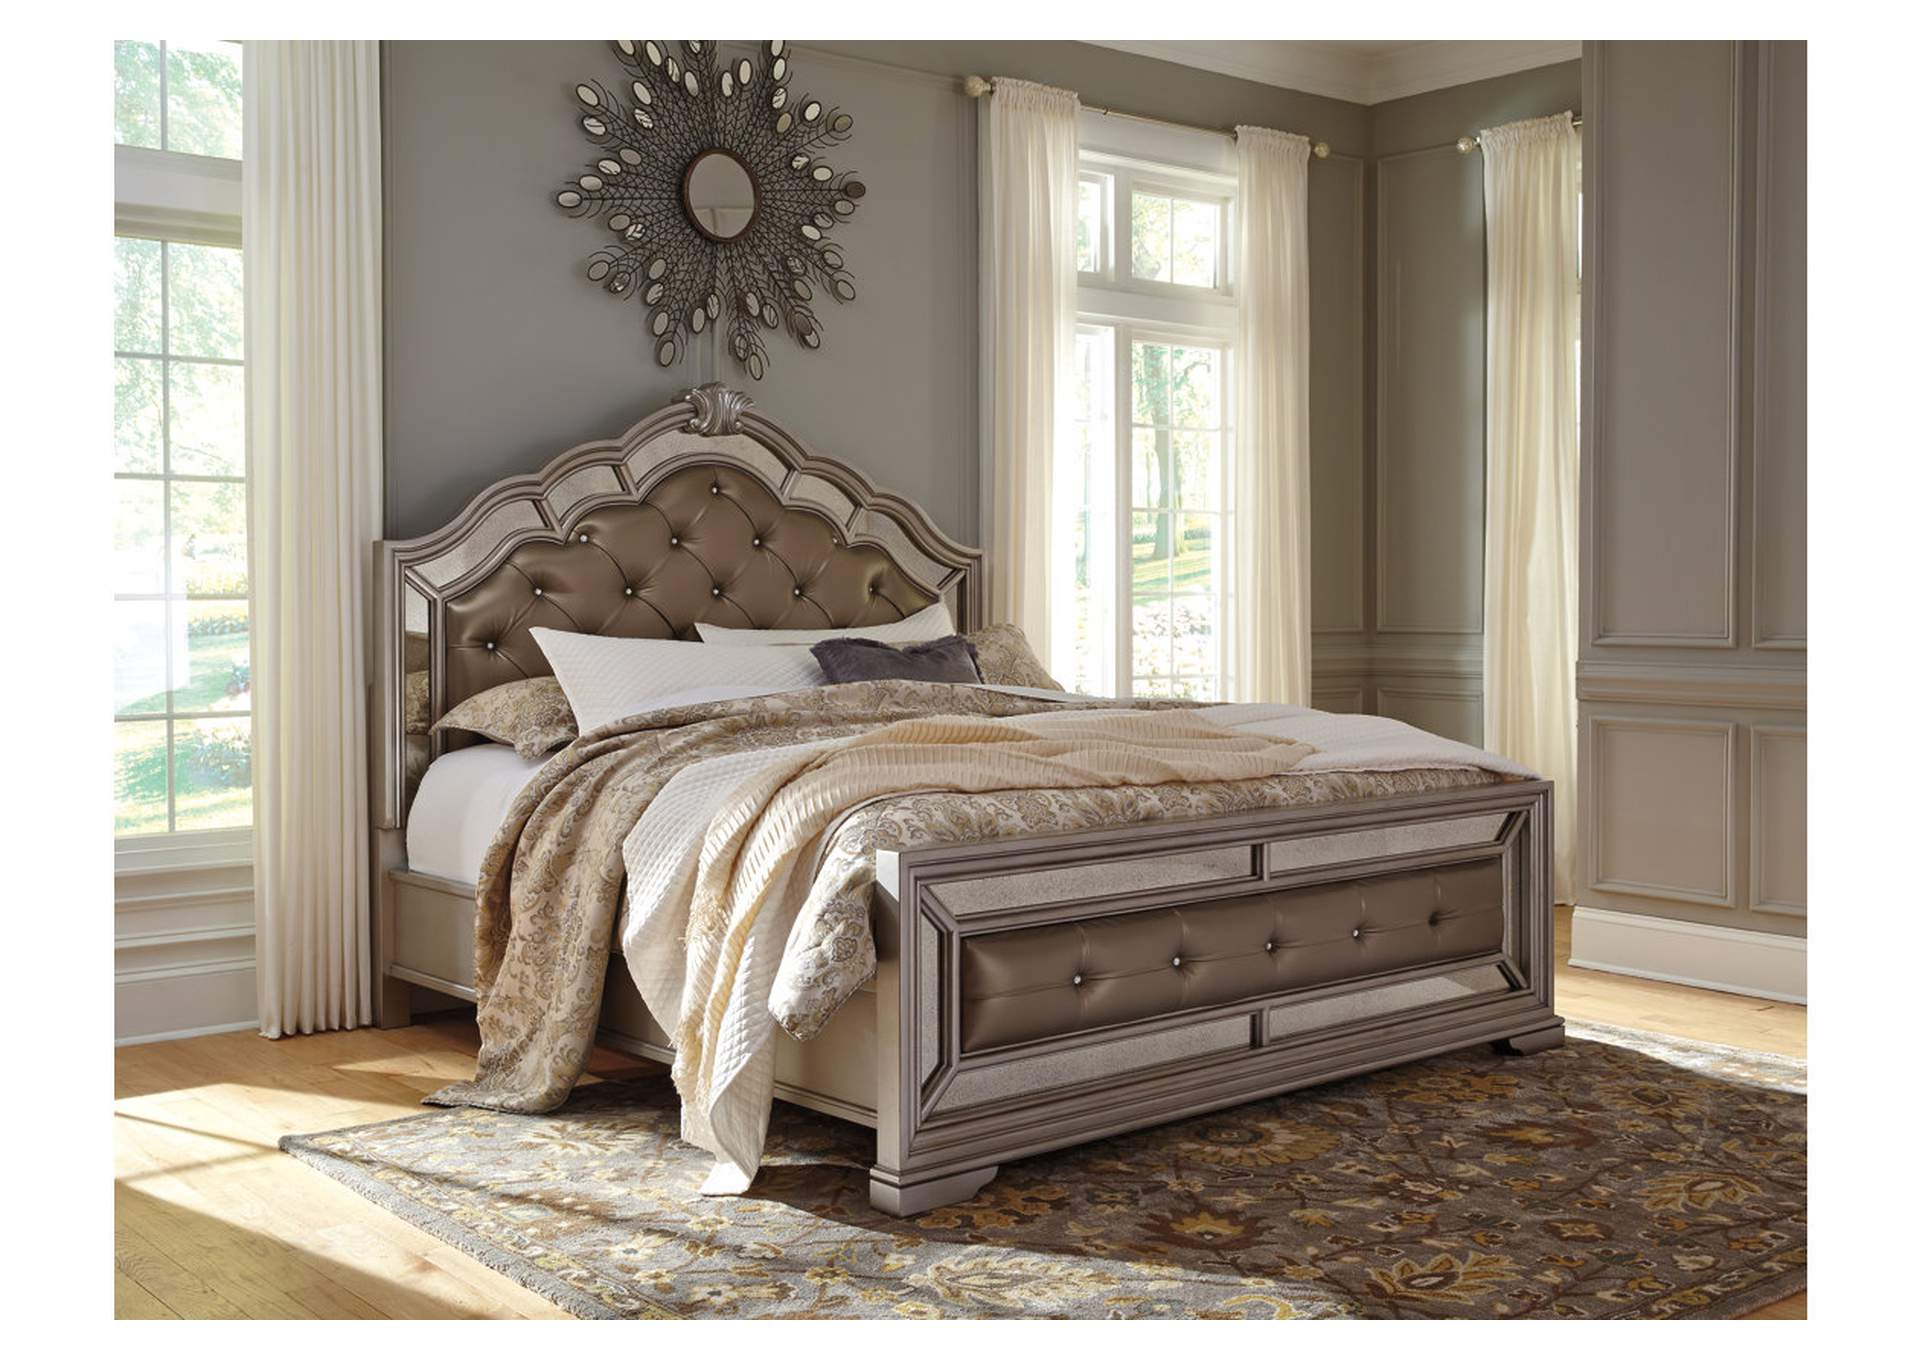 Birlanny Silver King Upholstered Bed,Signature Design By Ashley